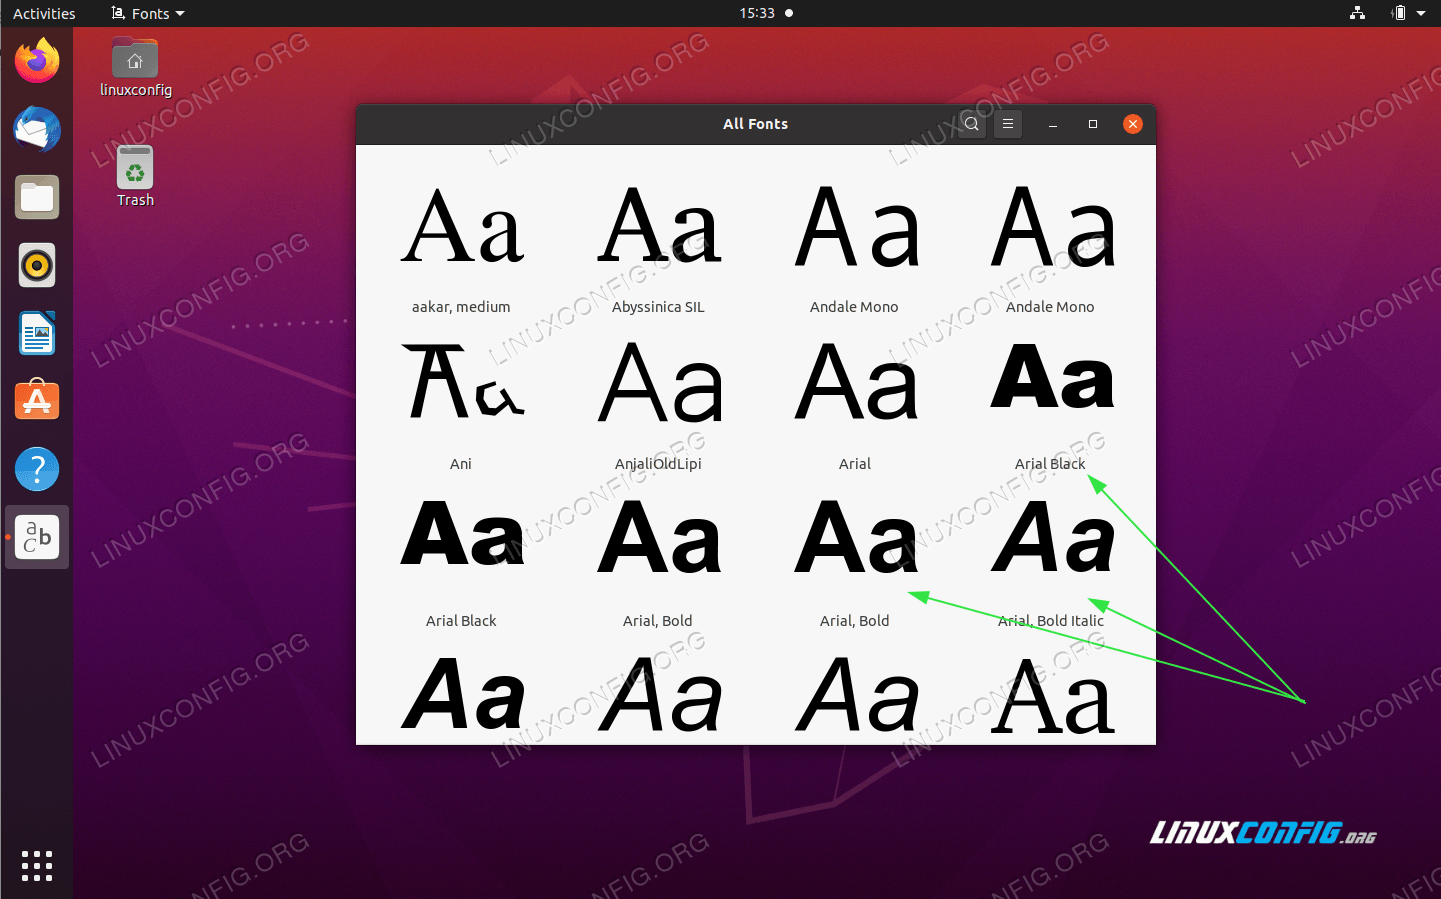 Confirm that Microsoft fonts are installed